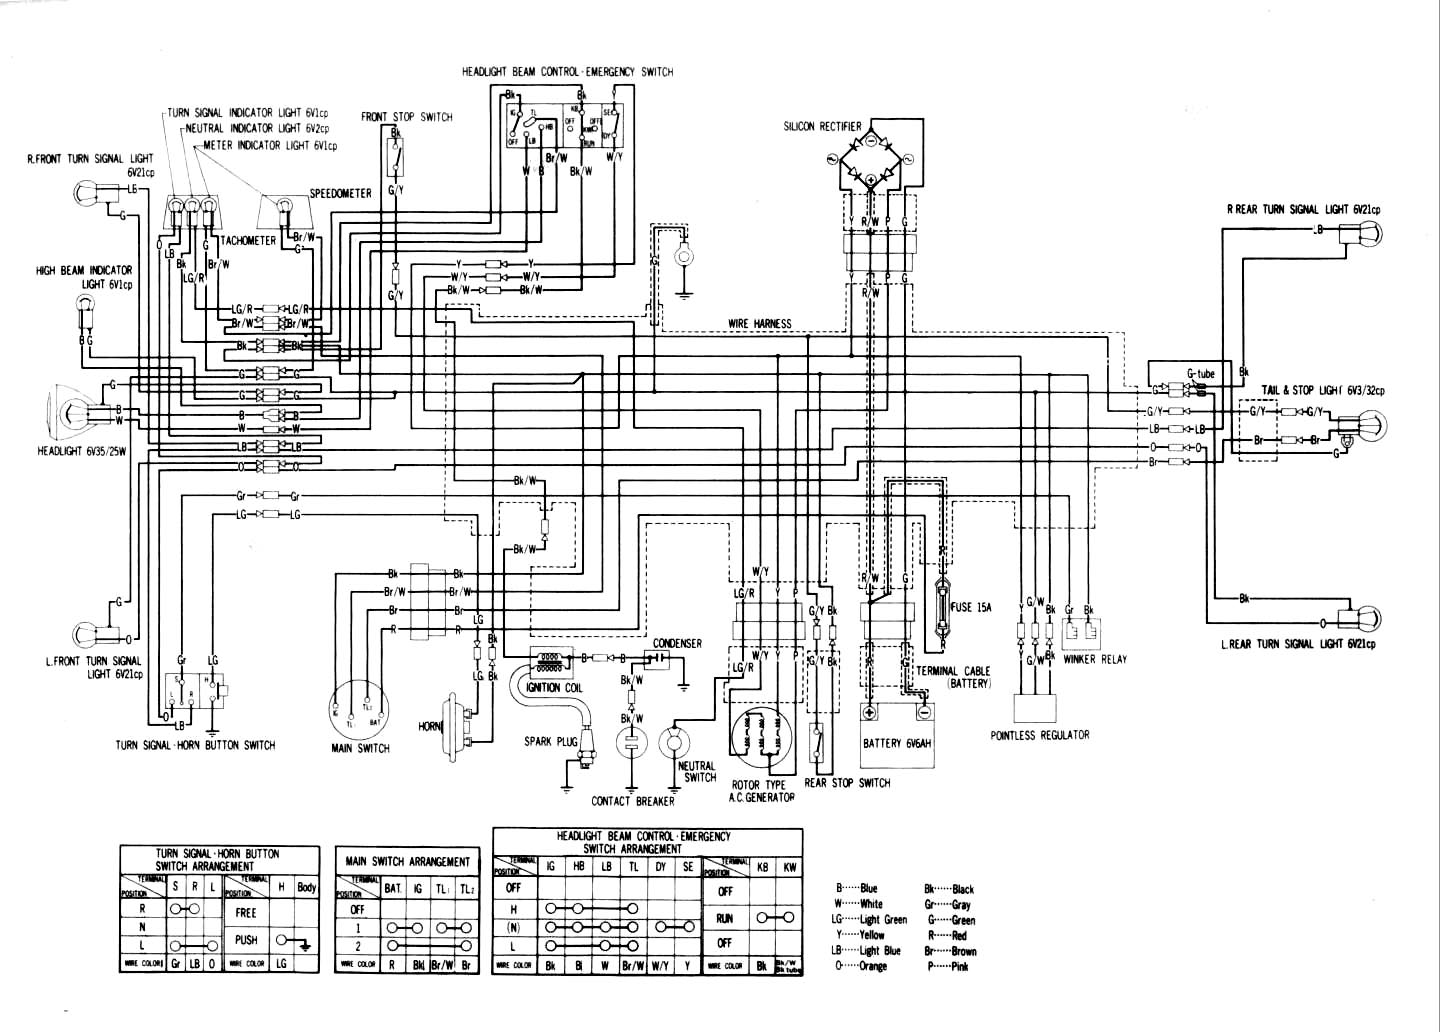 Honda Crf 50 Carburetor Diagram besides 2013 Honda Crf450r Wiring Diagram moreover Honda Trx250ex Carburetor Diagram together with Honda Rebel 250 Engine Diagram besides 2005 Crf450r Schematic Of Honda Motorcycle Parts. on crf 450 wiring schematics